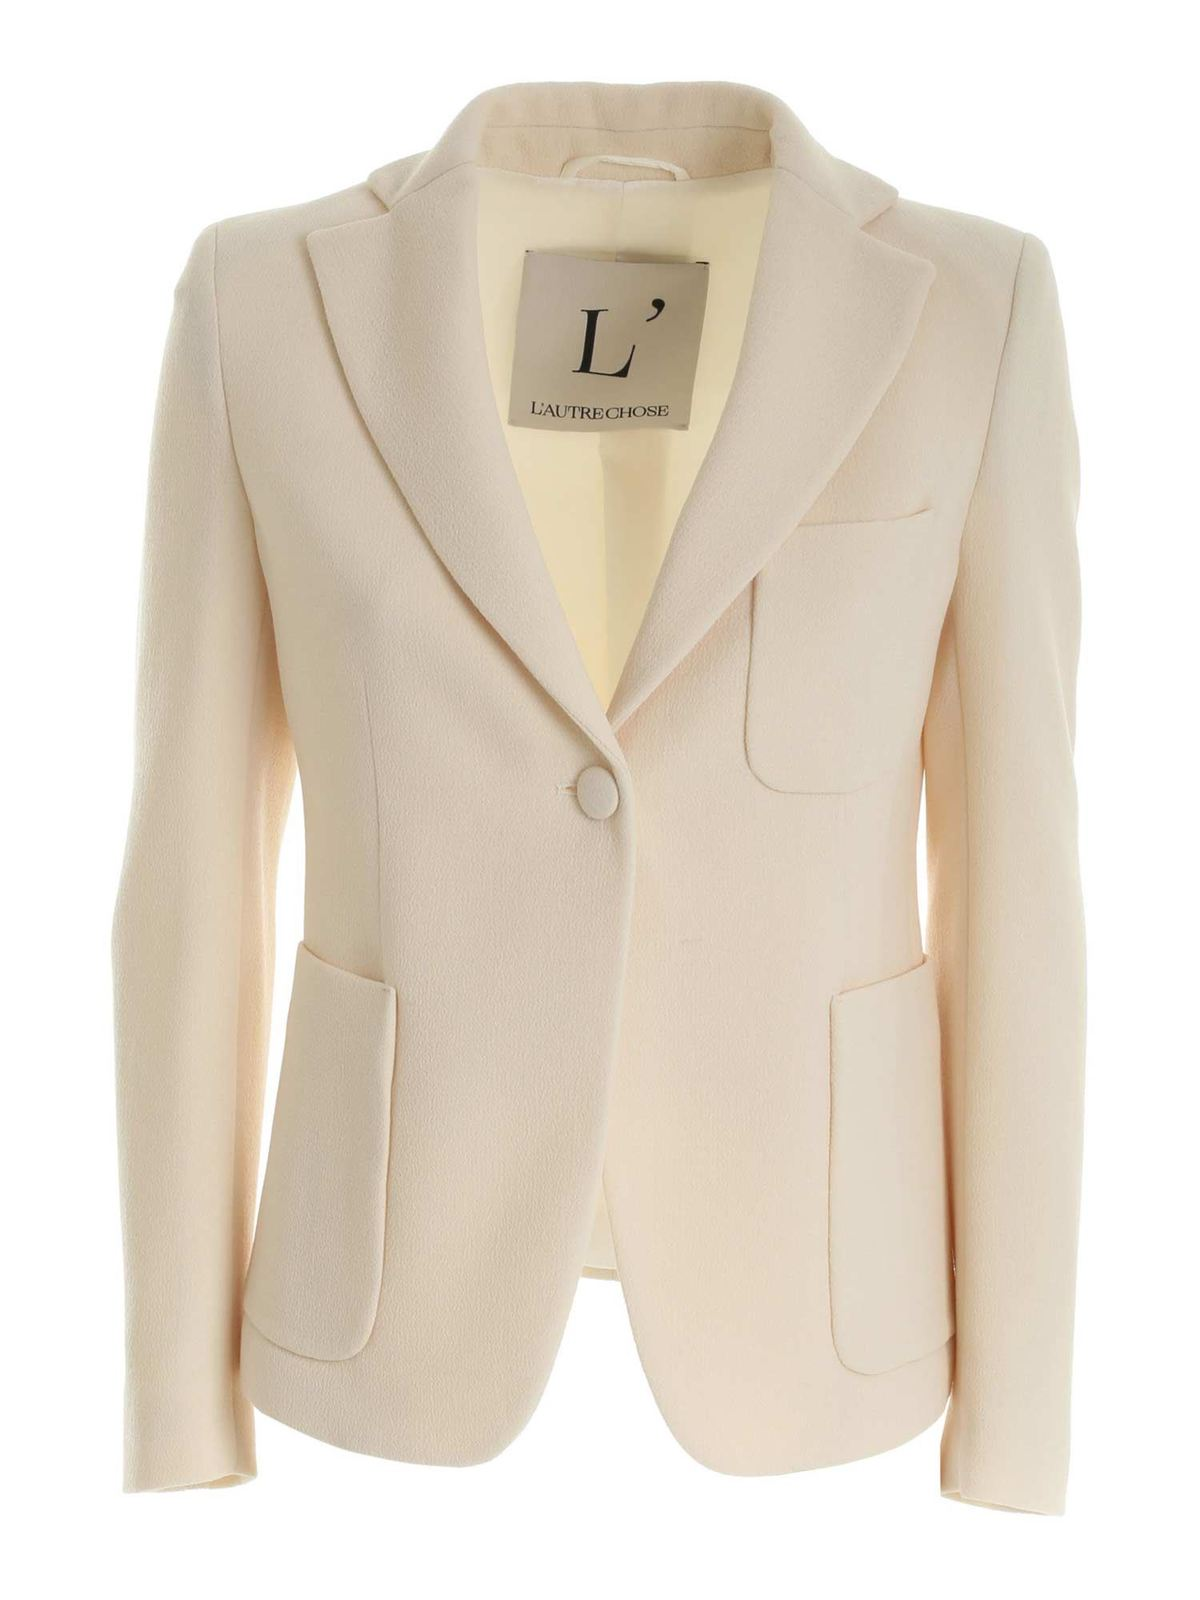 L'autre Chose WOOL CREPE SINGLE-BREASTED JACKET IN CREAM CO